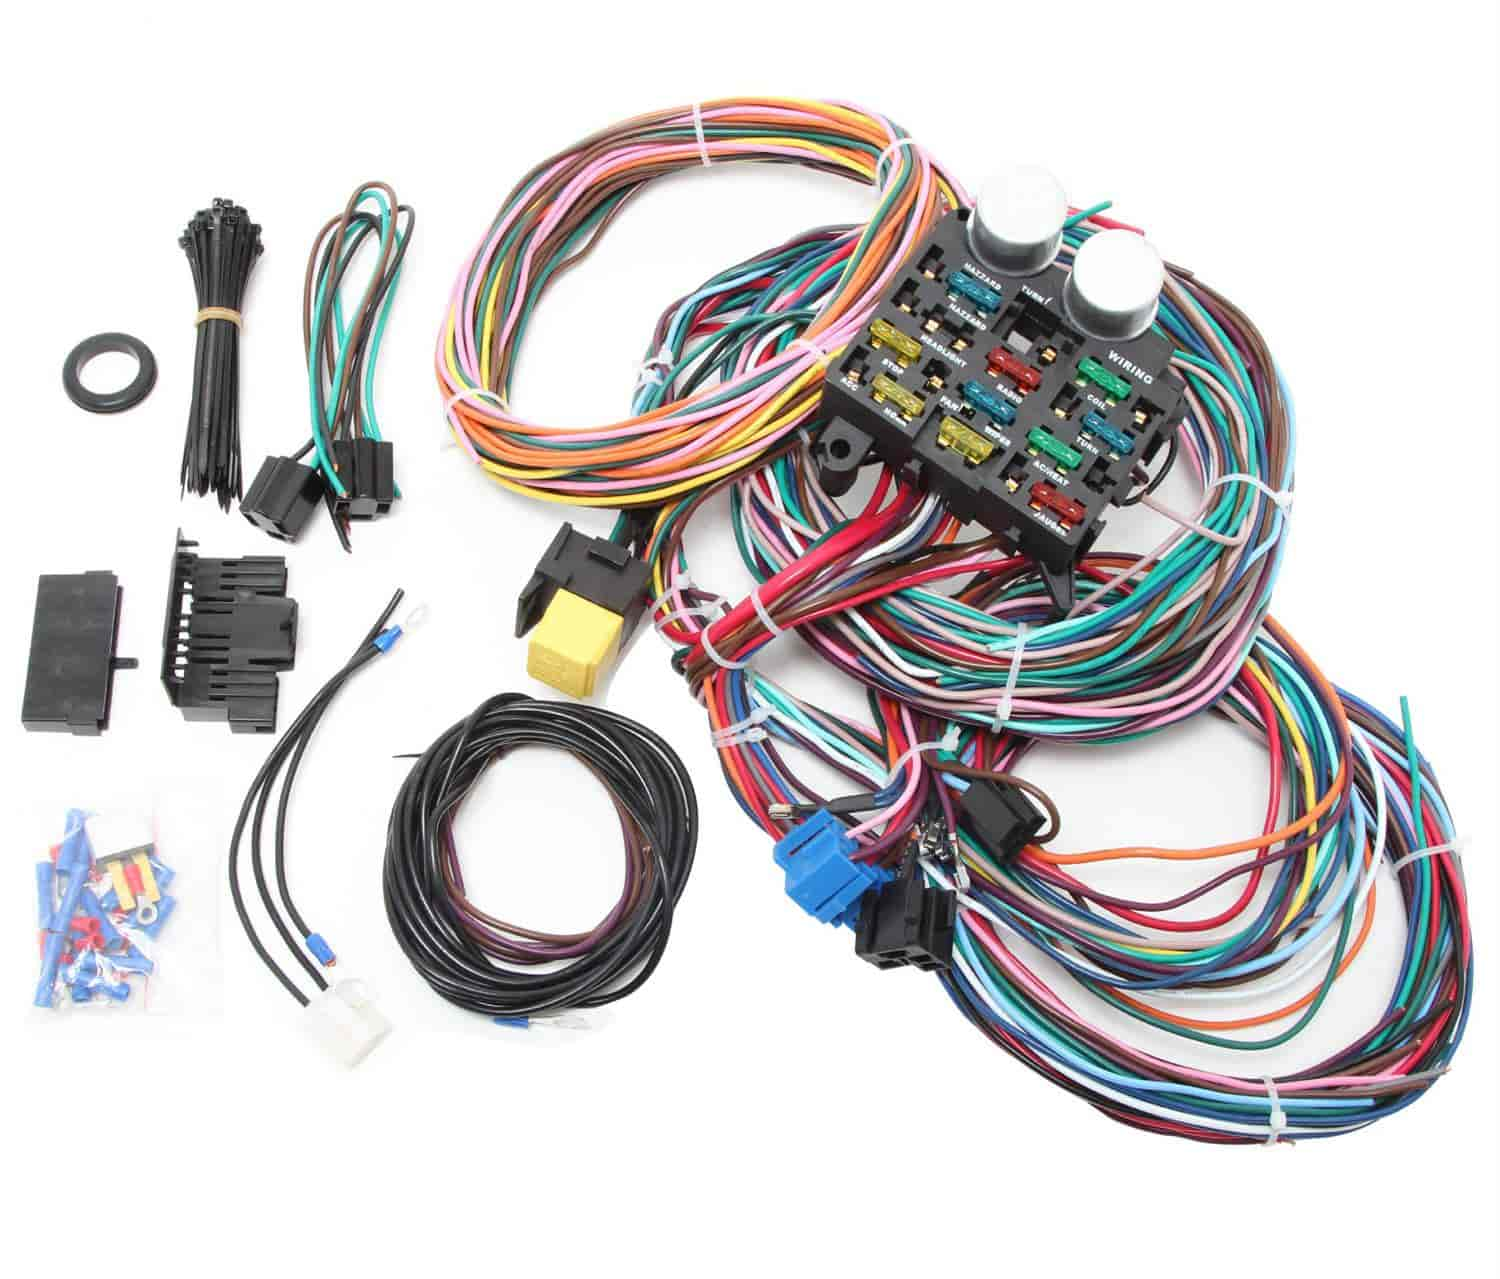 707 r1002x rpc r1002x universal 12 circuit wire harness kit jegs jegs universal wiring harness at panicattacktreatment.co